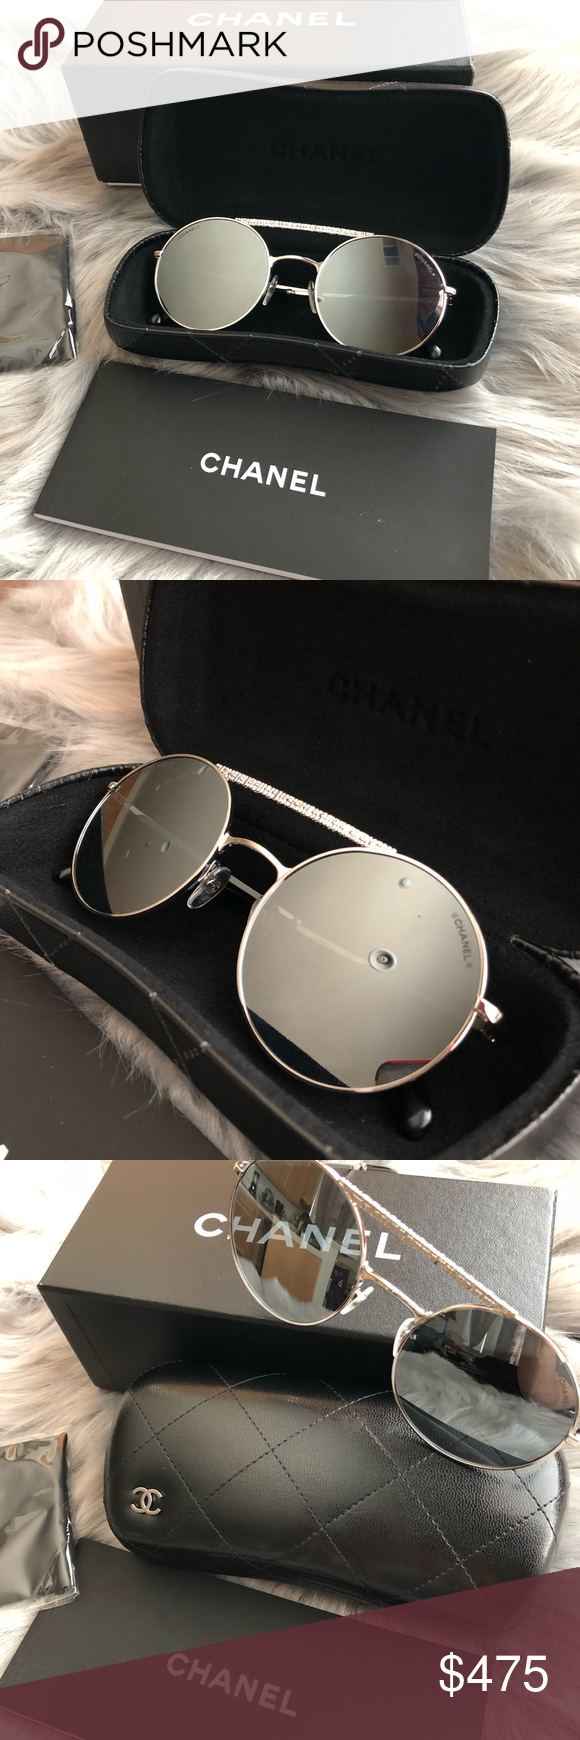 9fbe92d6339d ❤ ❤️Brand New Authentic Chanel Mirrored Sunglasses ❤ ❤️Brand New❤  ❤️Authentic Chanel 53mm Mirrored Round Sunglasses.